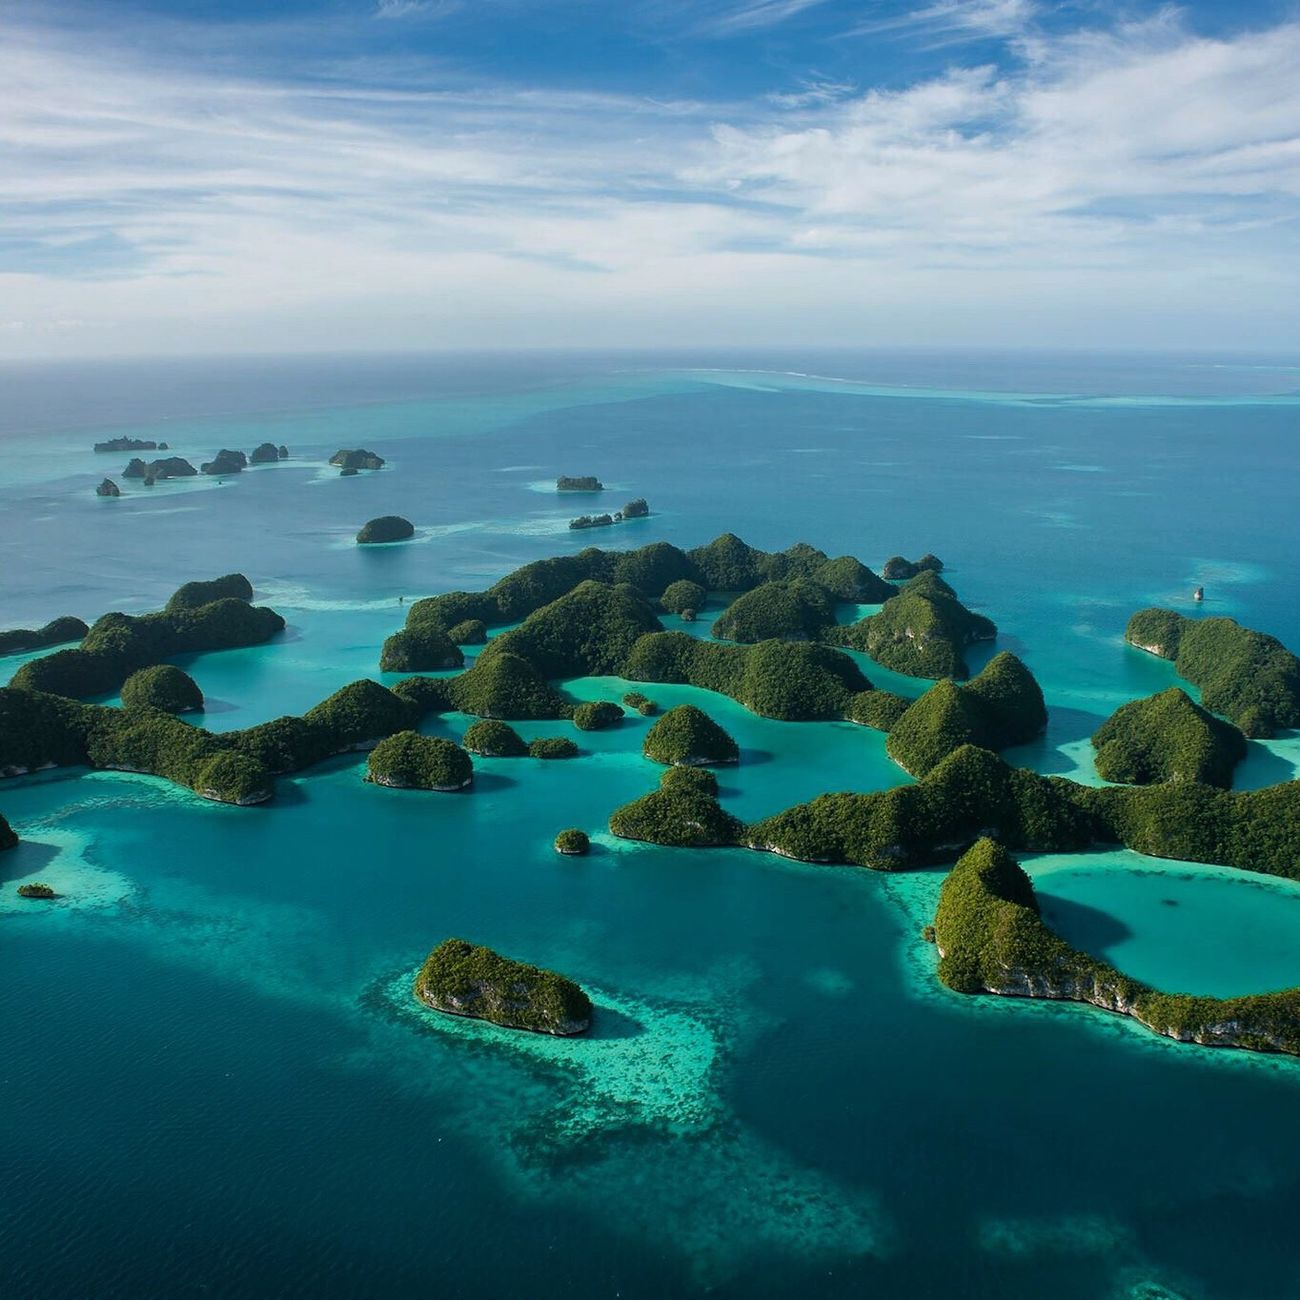 Aerial view of Palau Seventy Islands. Photo taken during a open door helicopter ride during a return visit. Lucky to have called Palau home for two years. The Traveler - 2015 EyeEm Awards Nature Landscape_Collection Traveling Beautiful Nature Island Share Your Adventure Check This Out Wanderlust The Adventure Handbook